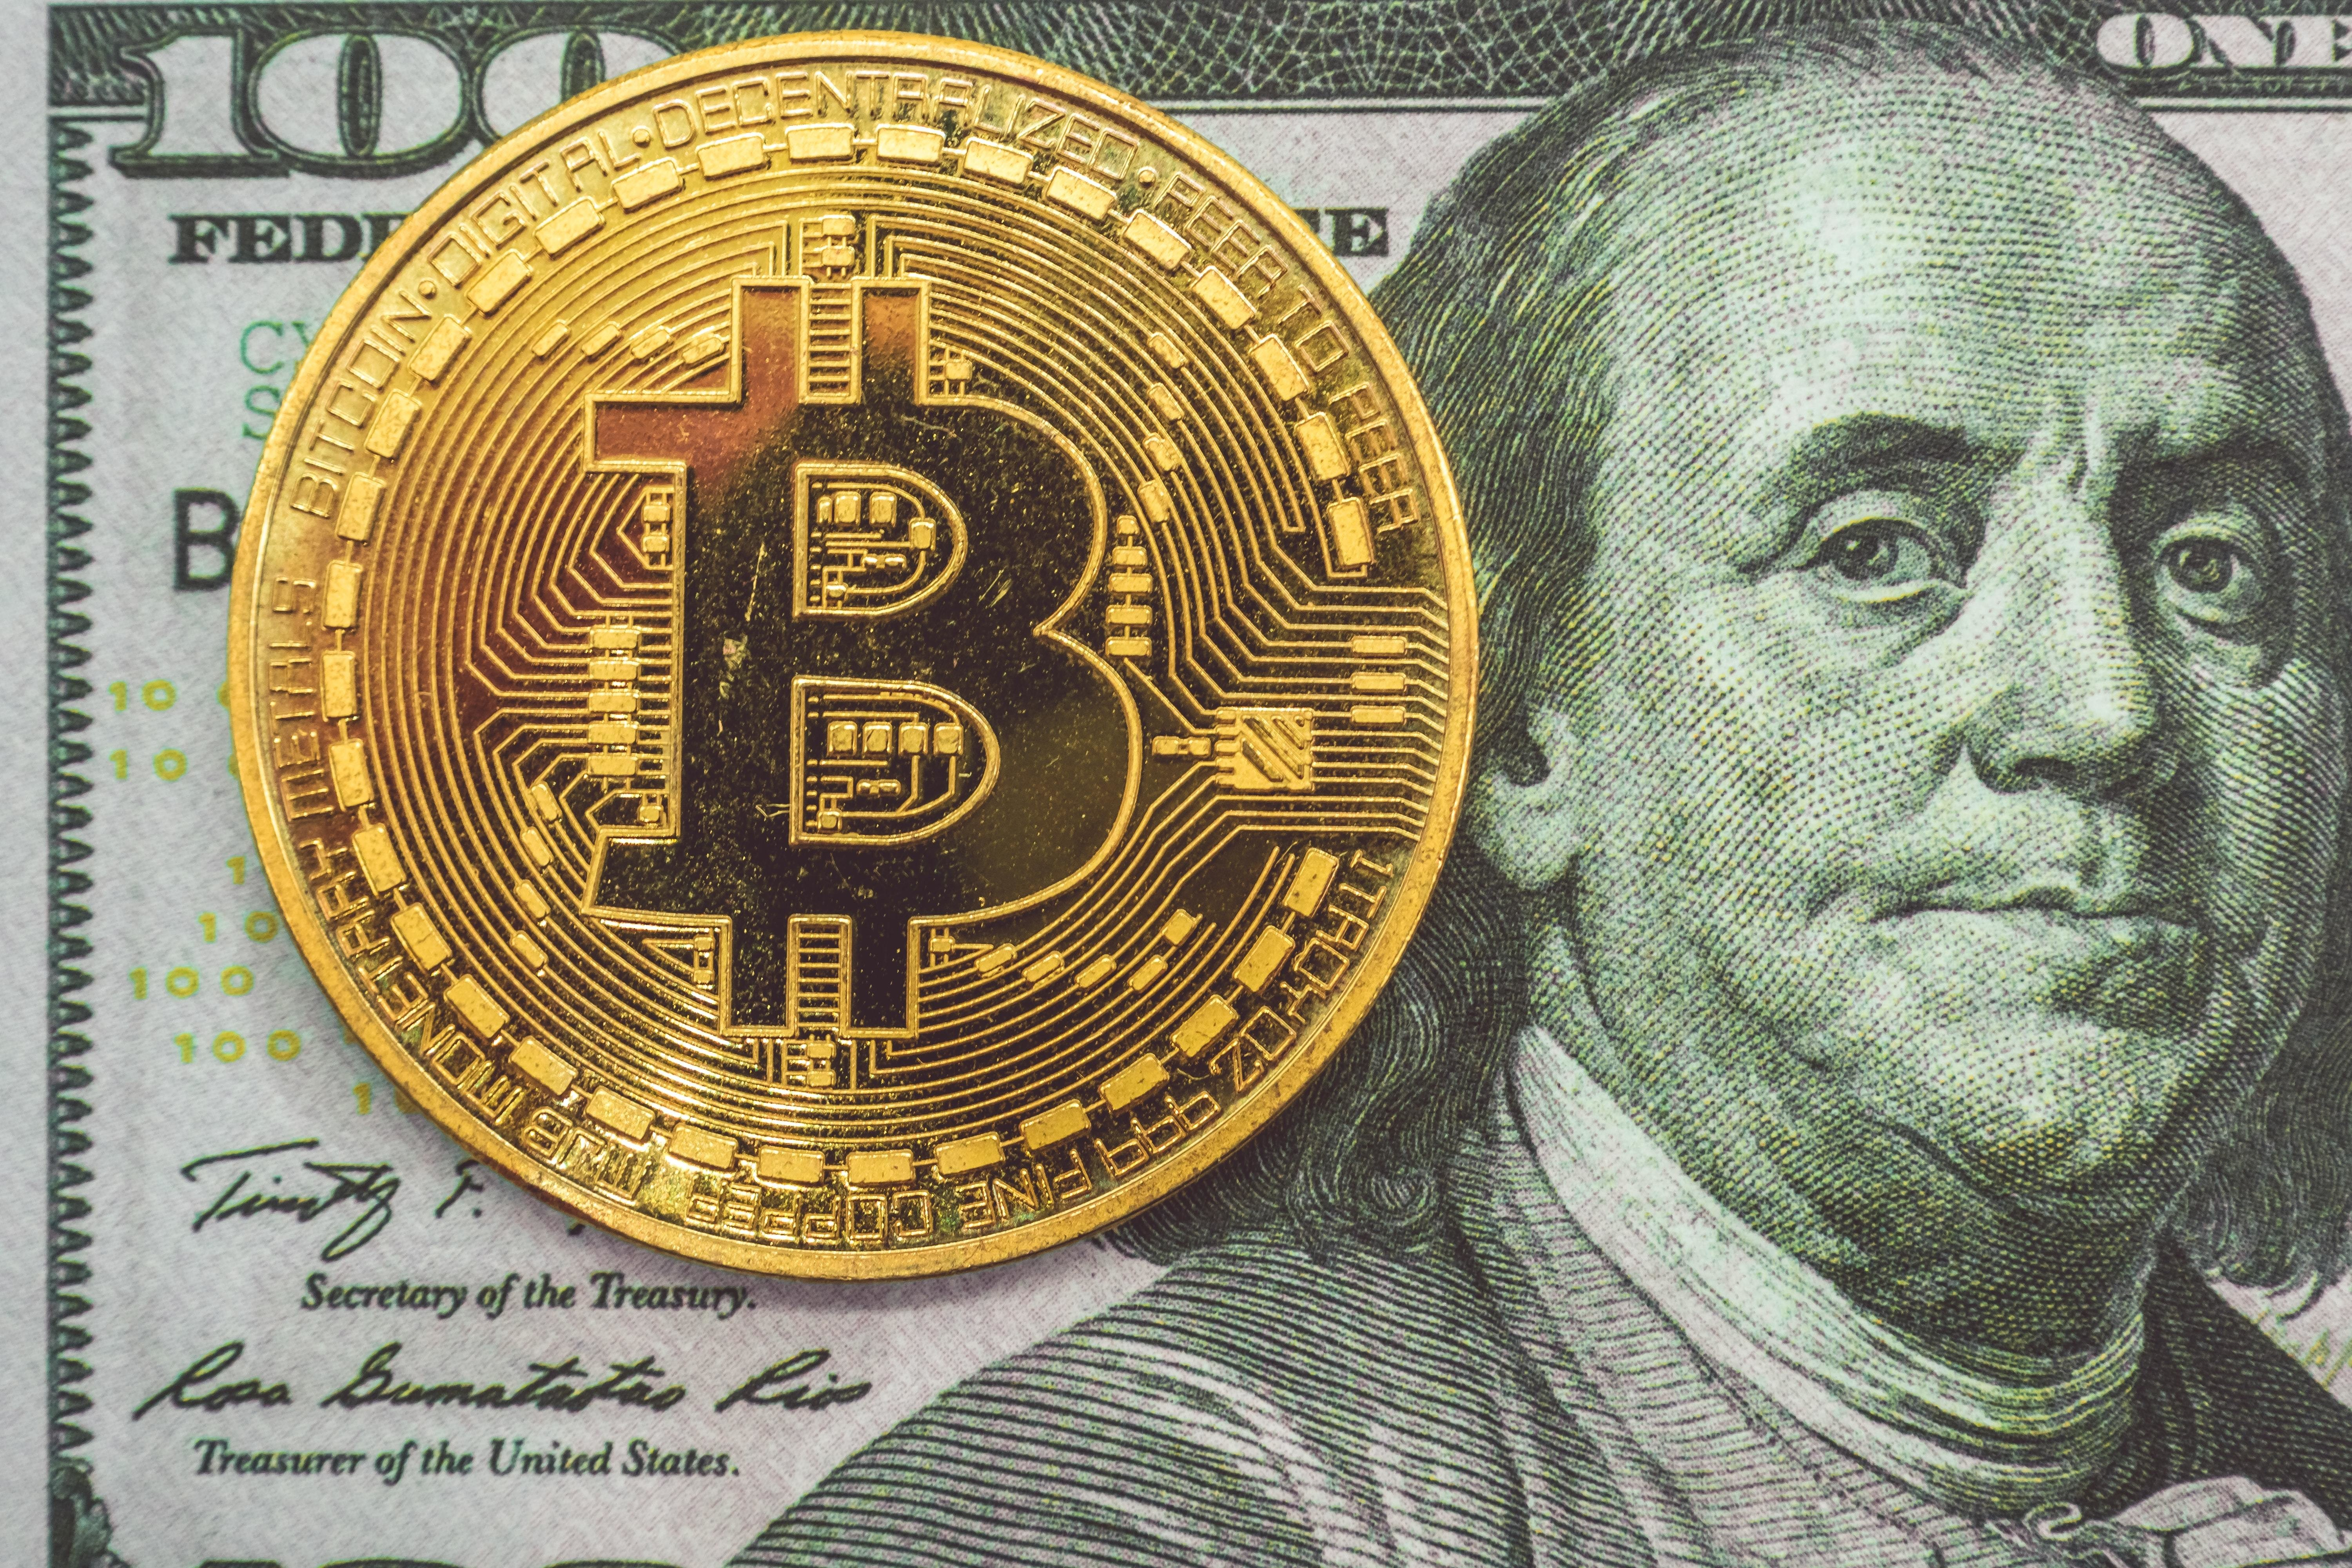 a picture of a bitcoin next to an american one hundred dollar bill featuring bill franklin on the front